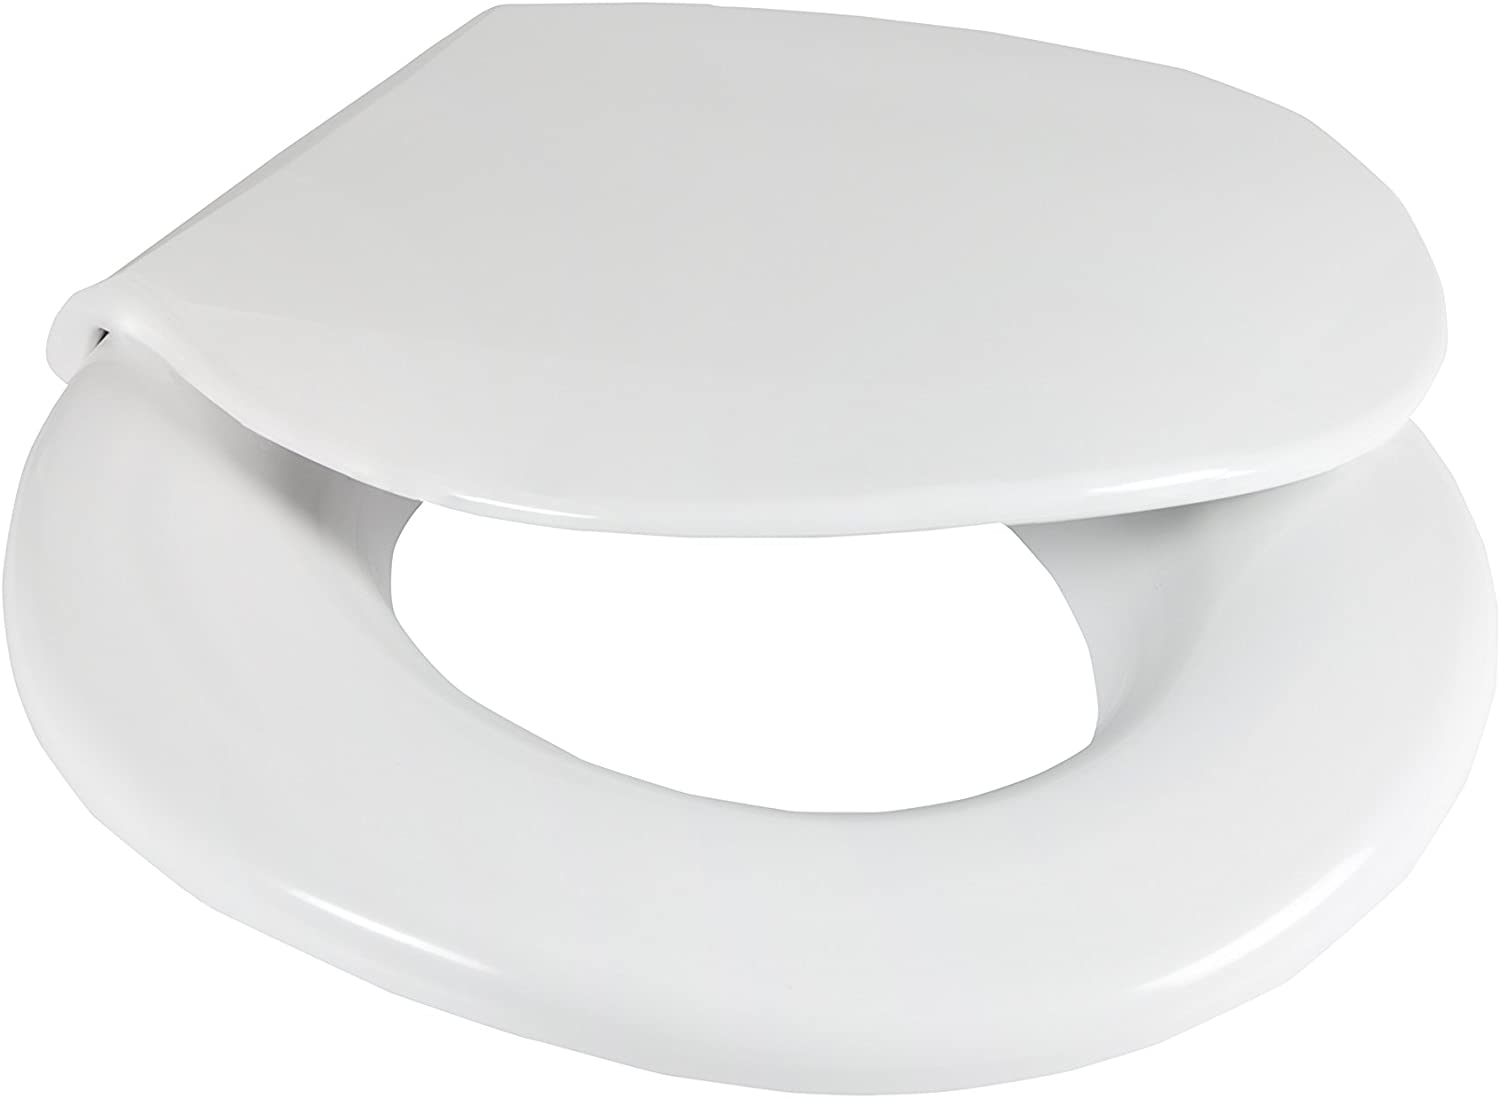 Big John Toilet Seat 2445646-1W Closed Front